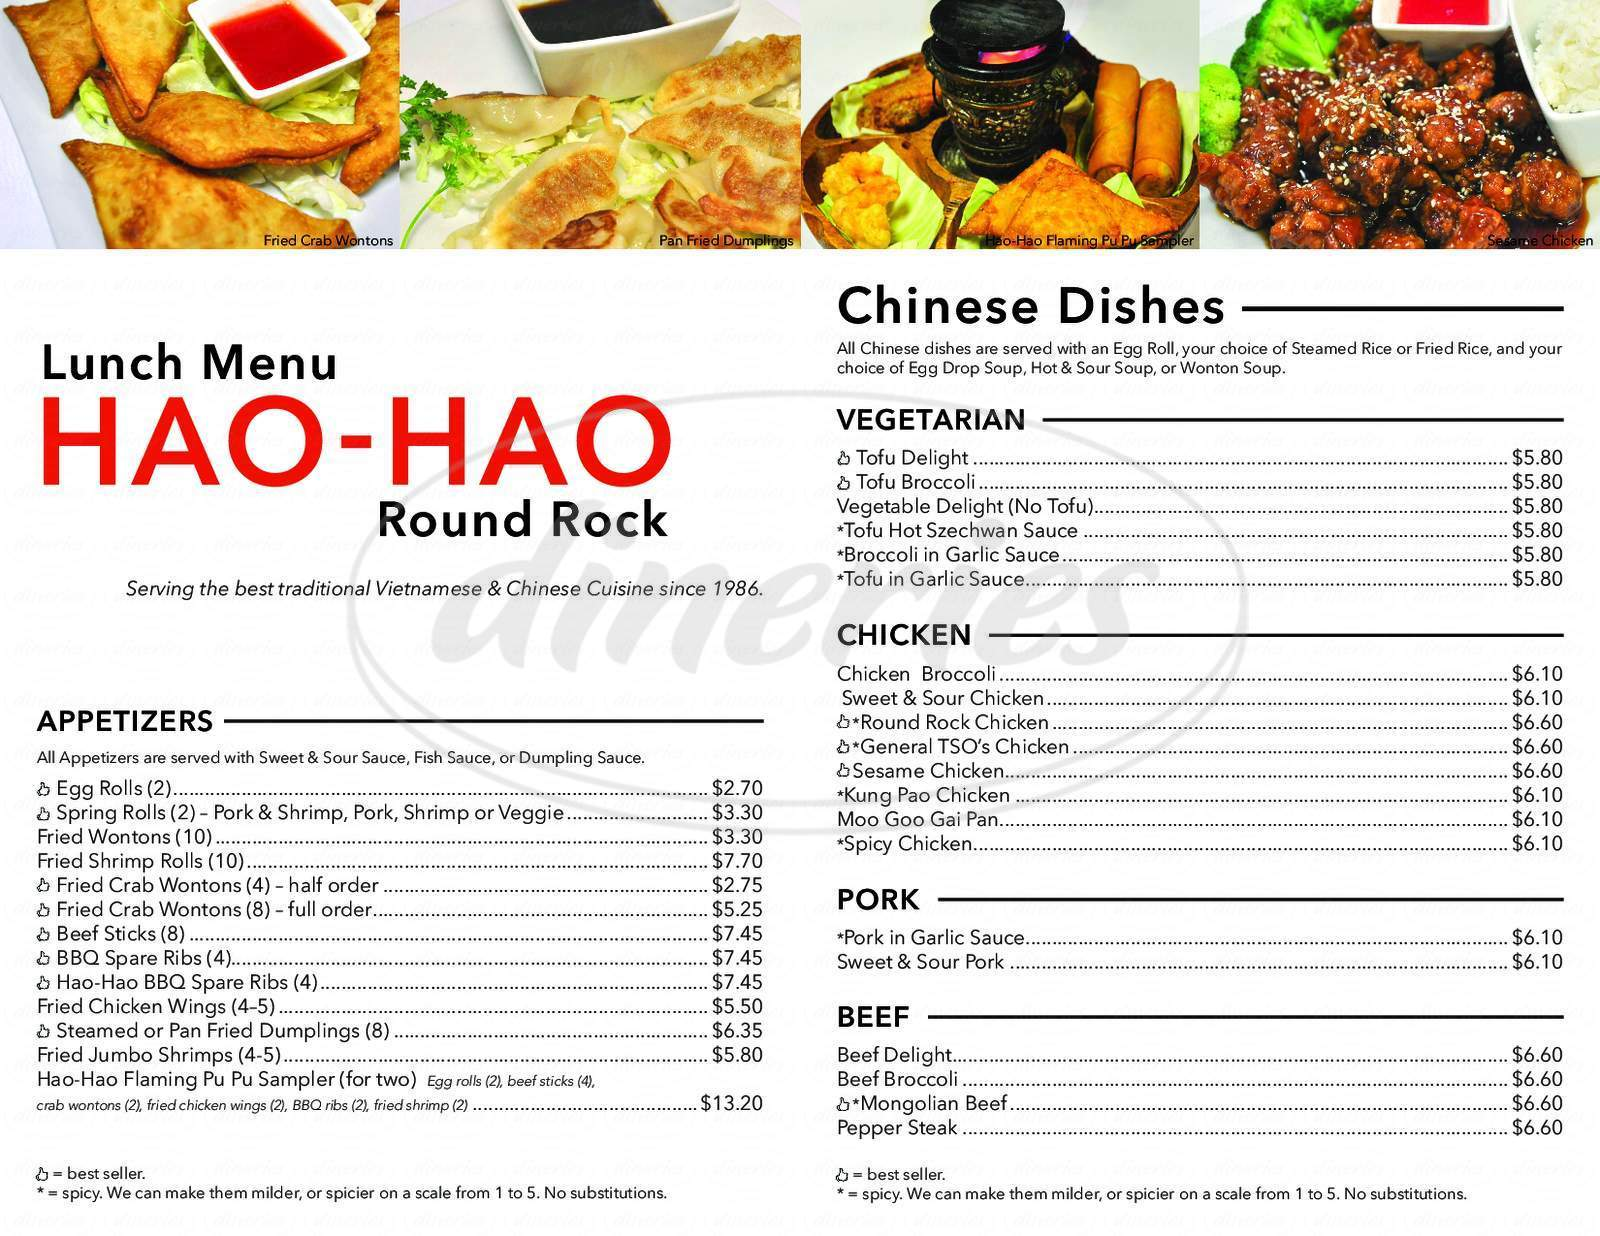 menu for Hao Hao